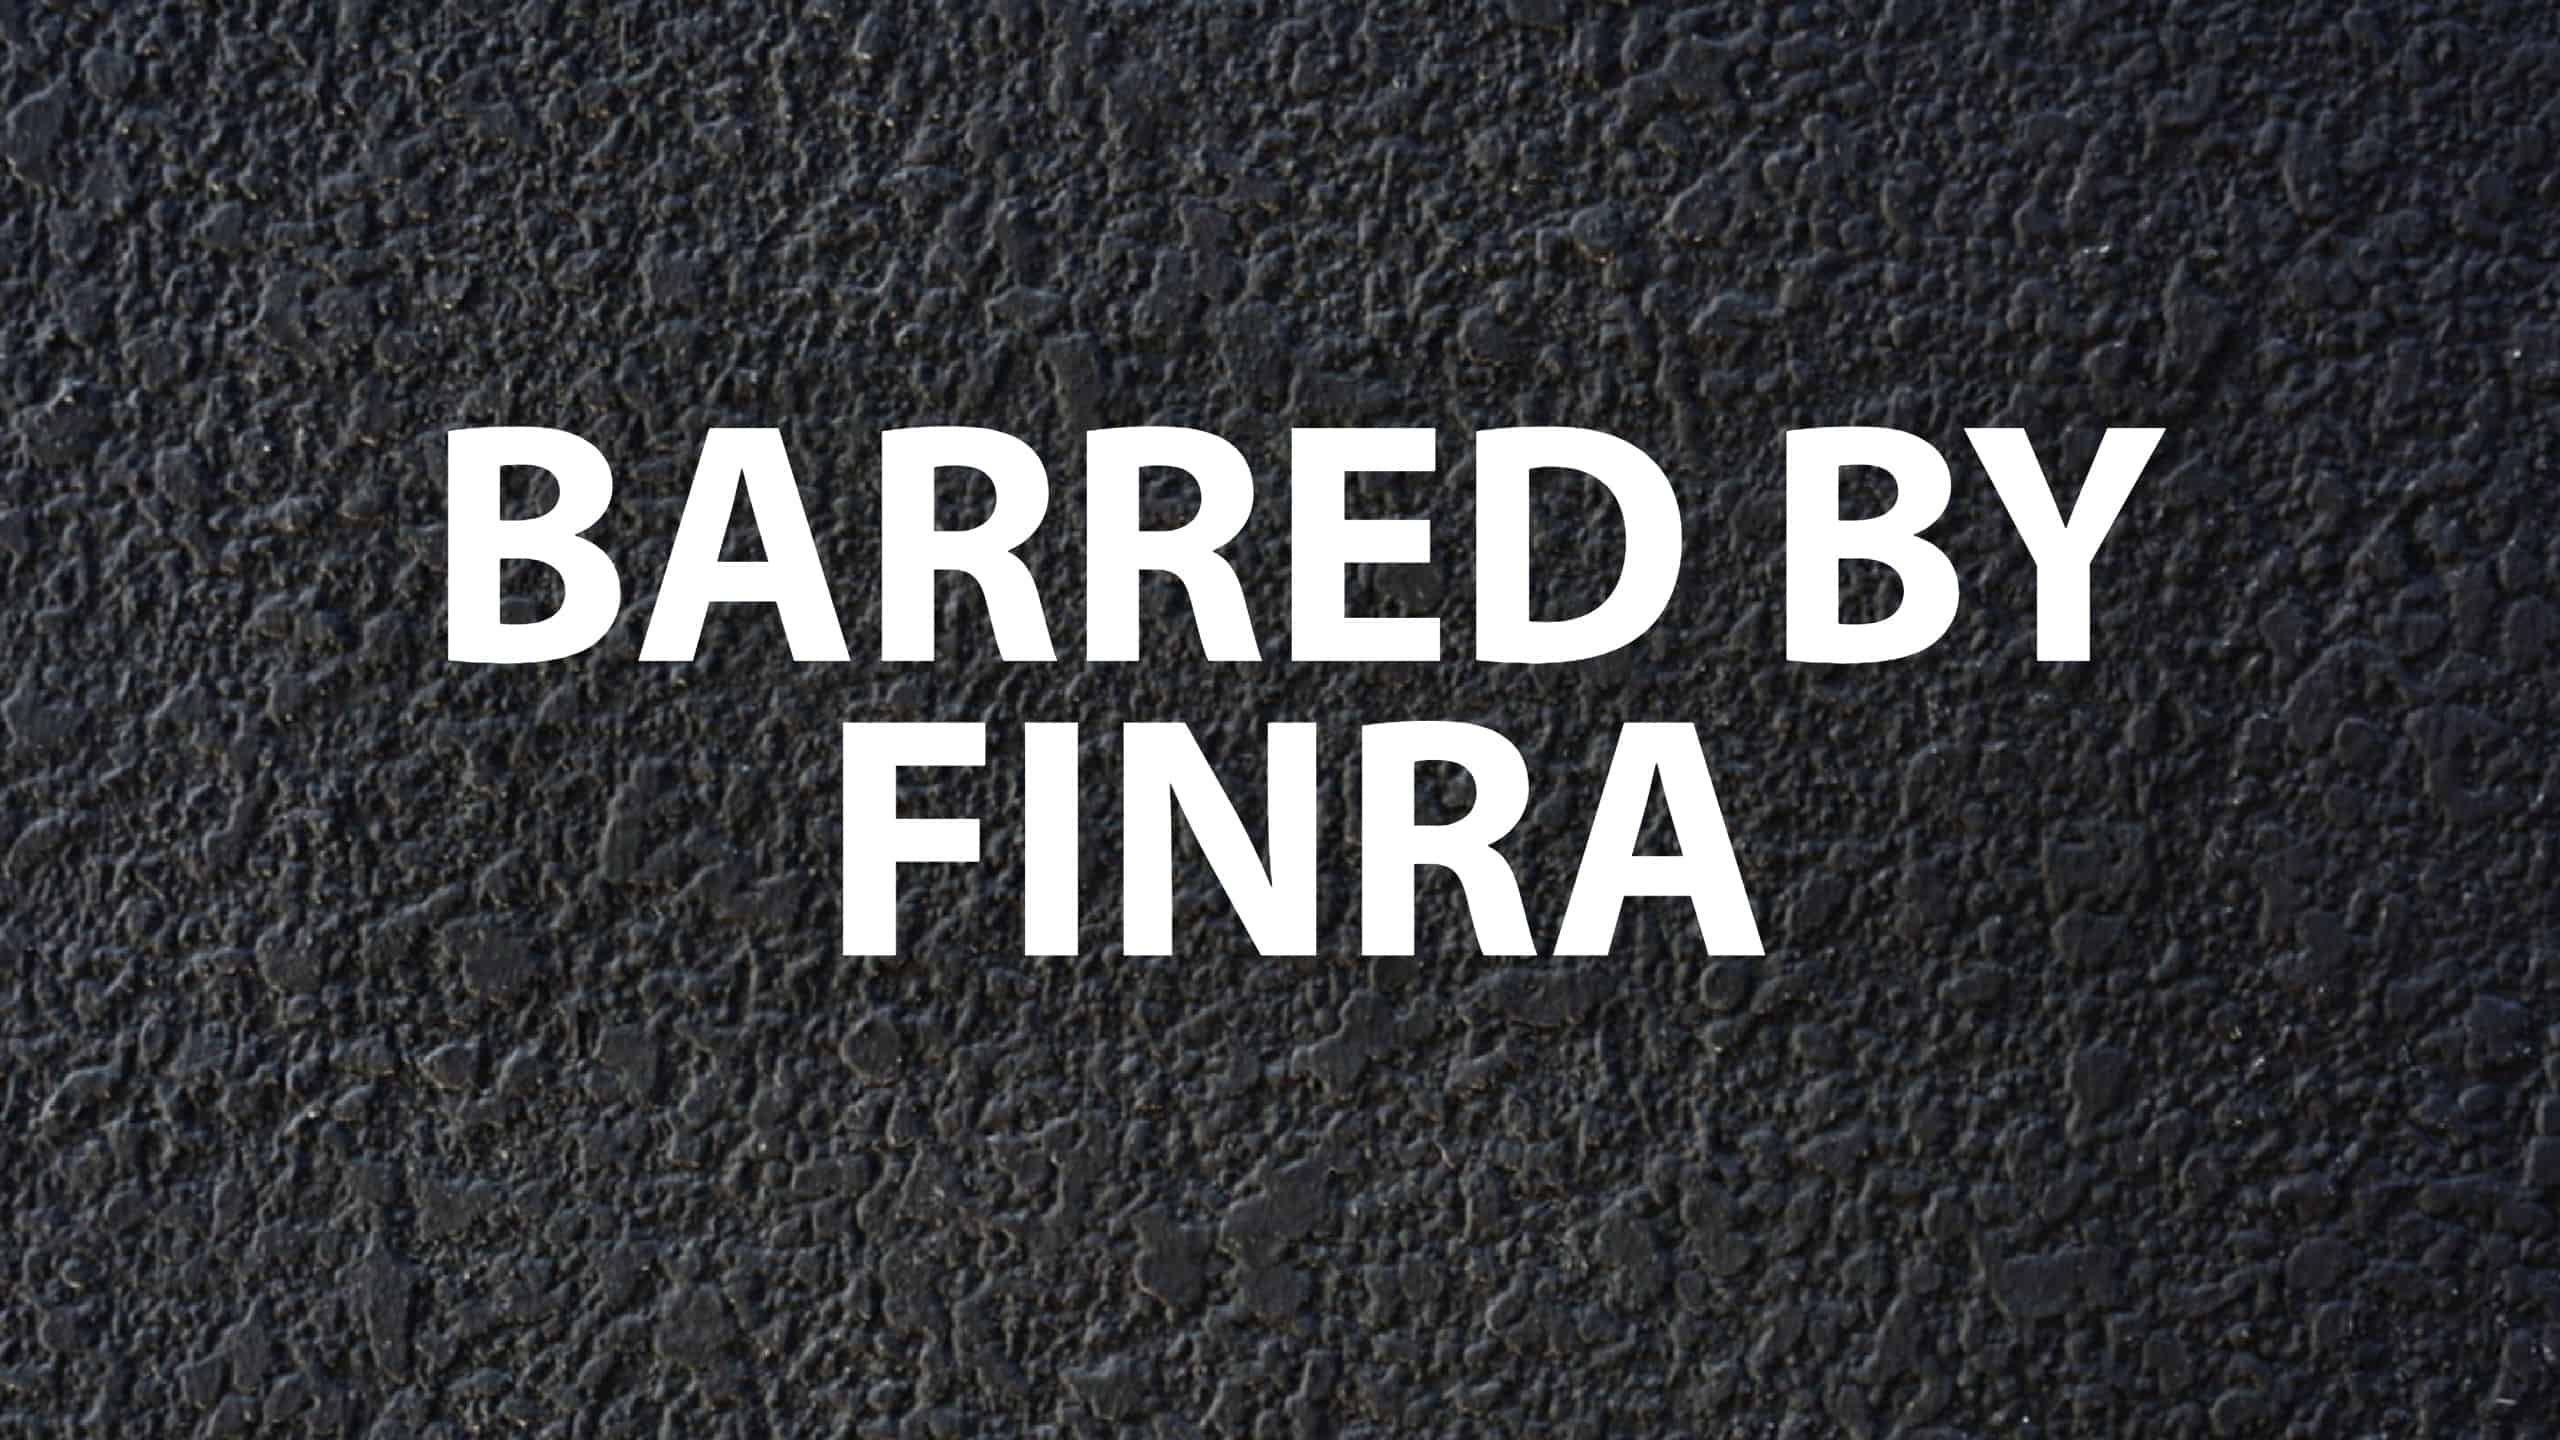 barred by finra